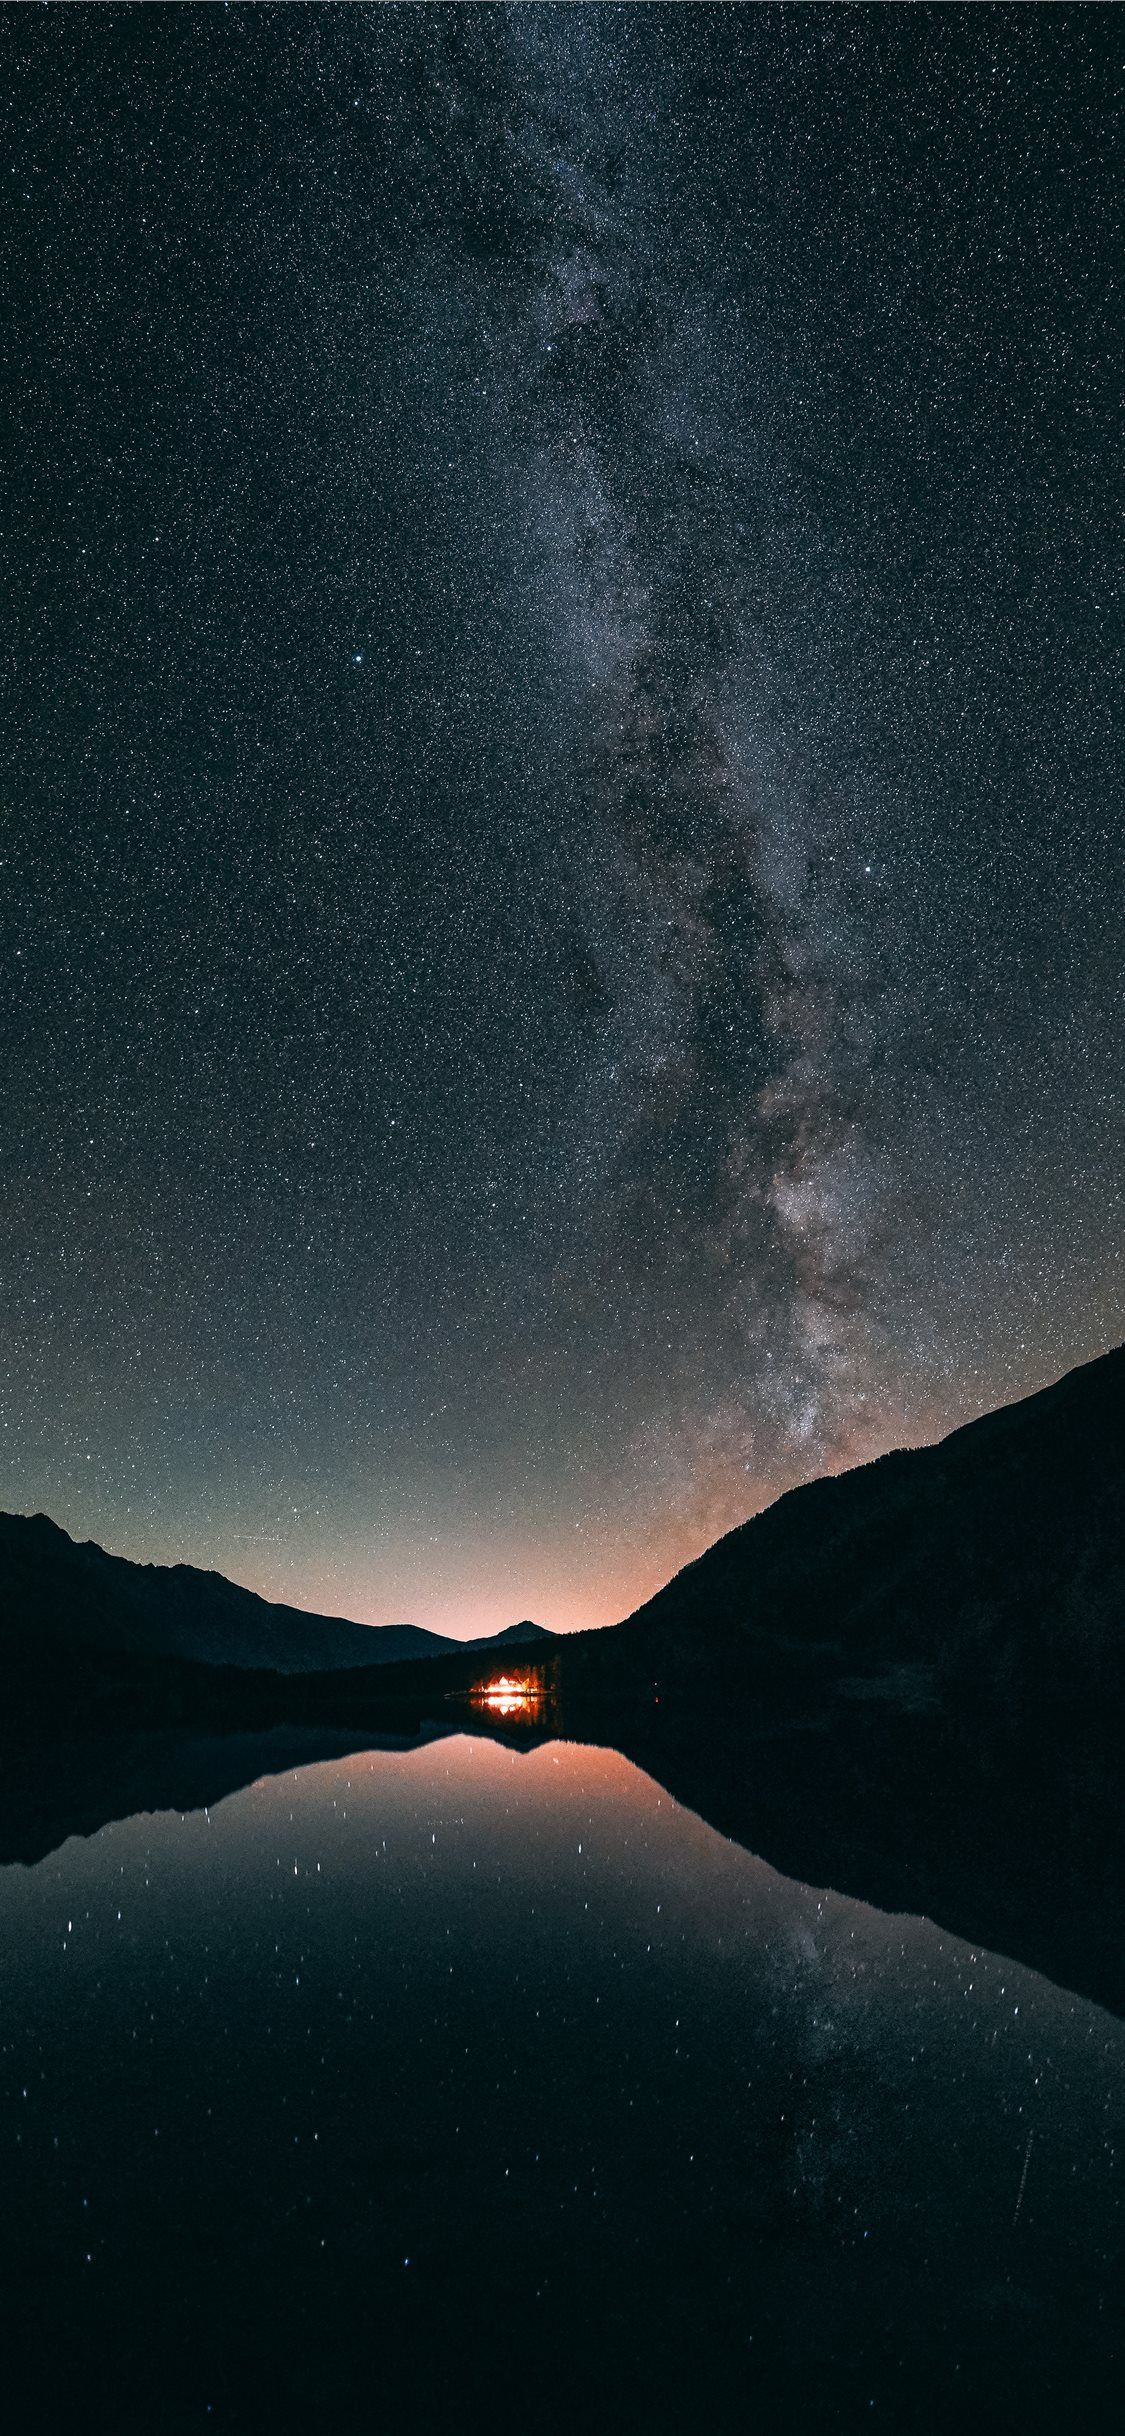 Milky Way Antholz Lake In 2020 Iphone Wallpaper Sky Hd Wallpaper Iphone Iphone Homescreen Wallpaper